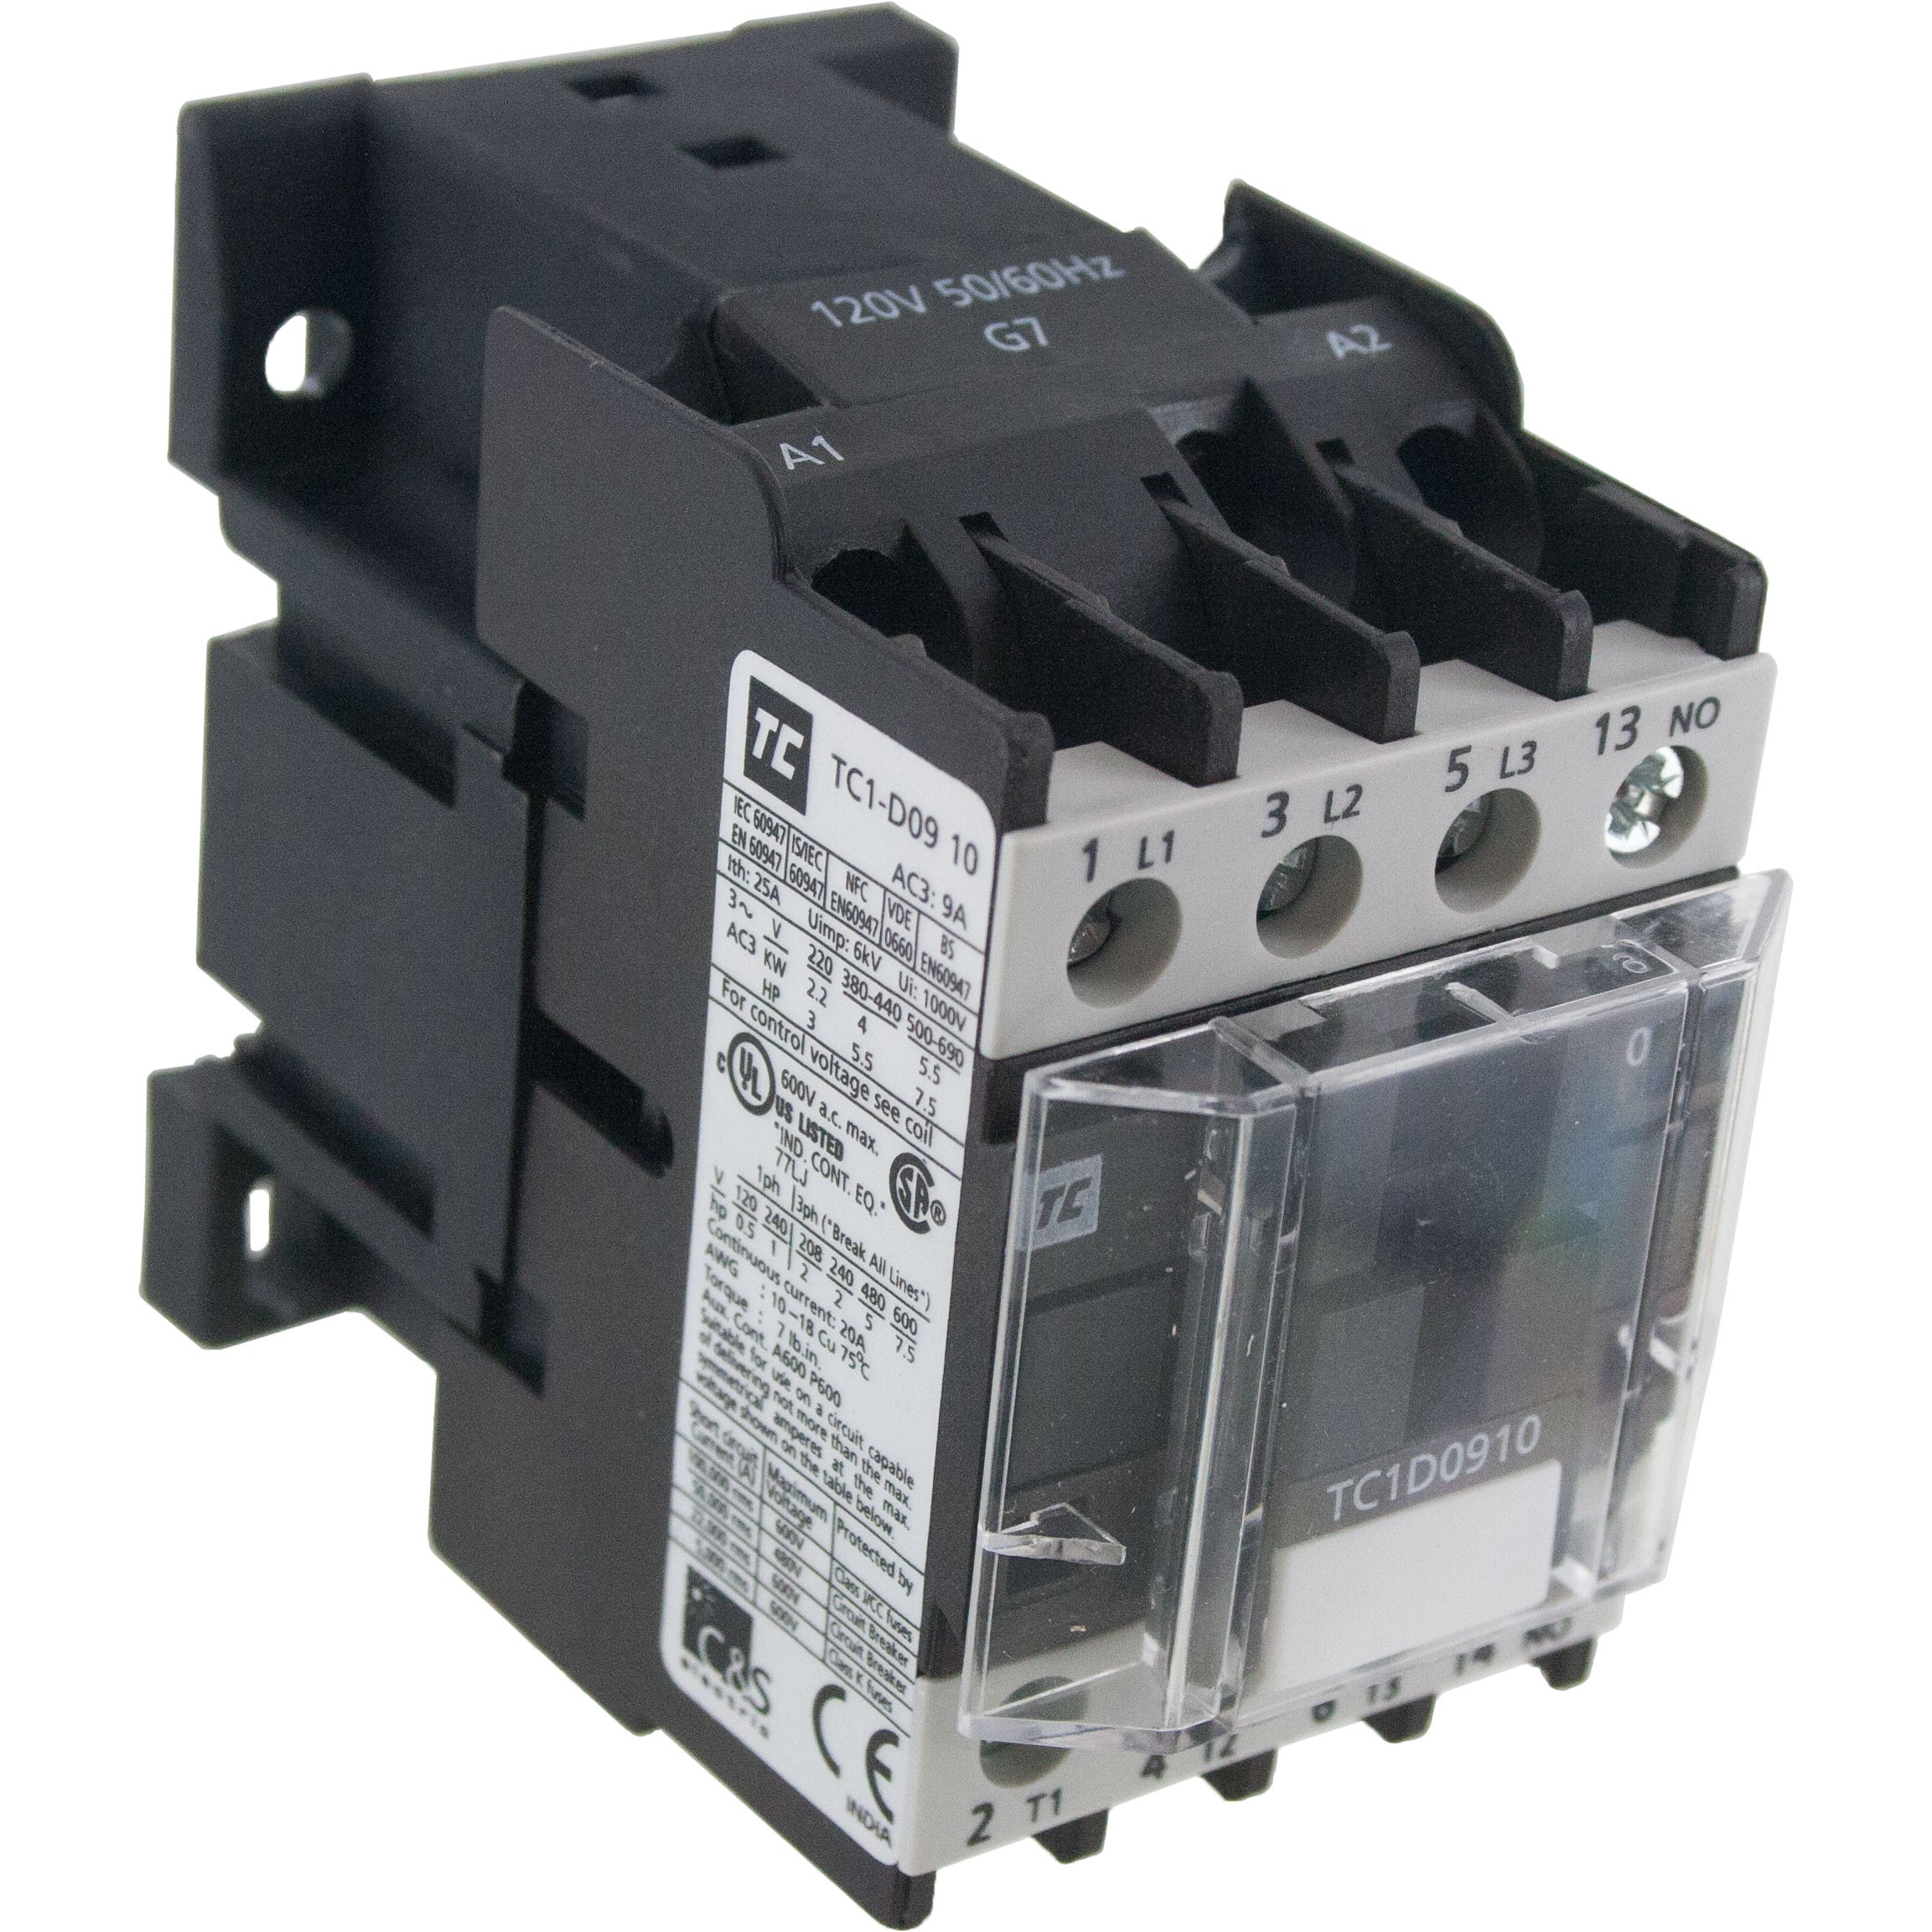 3 Pole Contactor 9 Amp 600 Vac Coil Angle